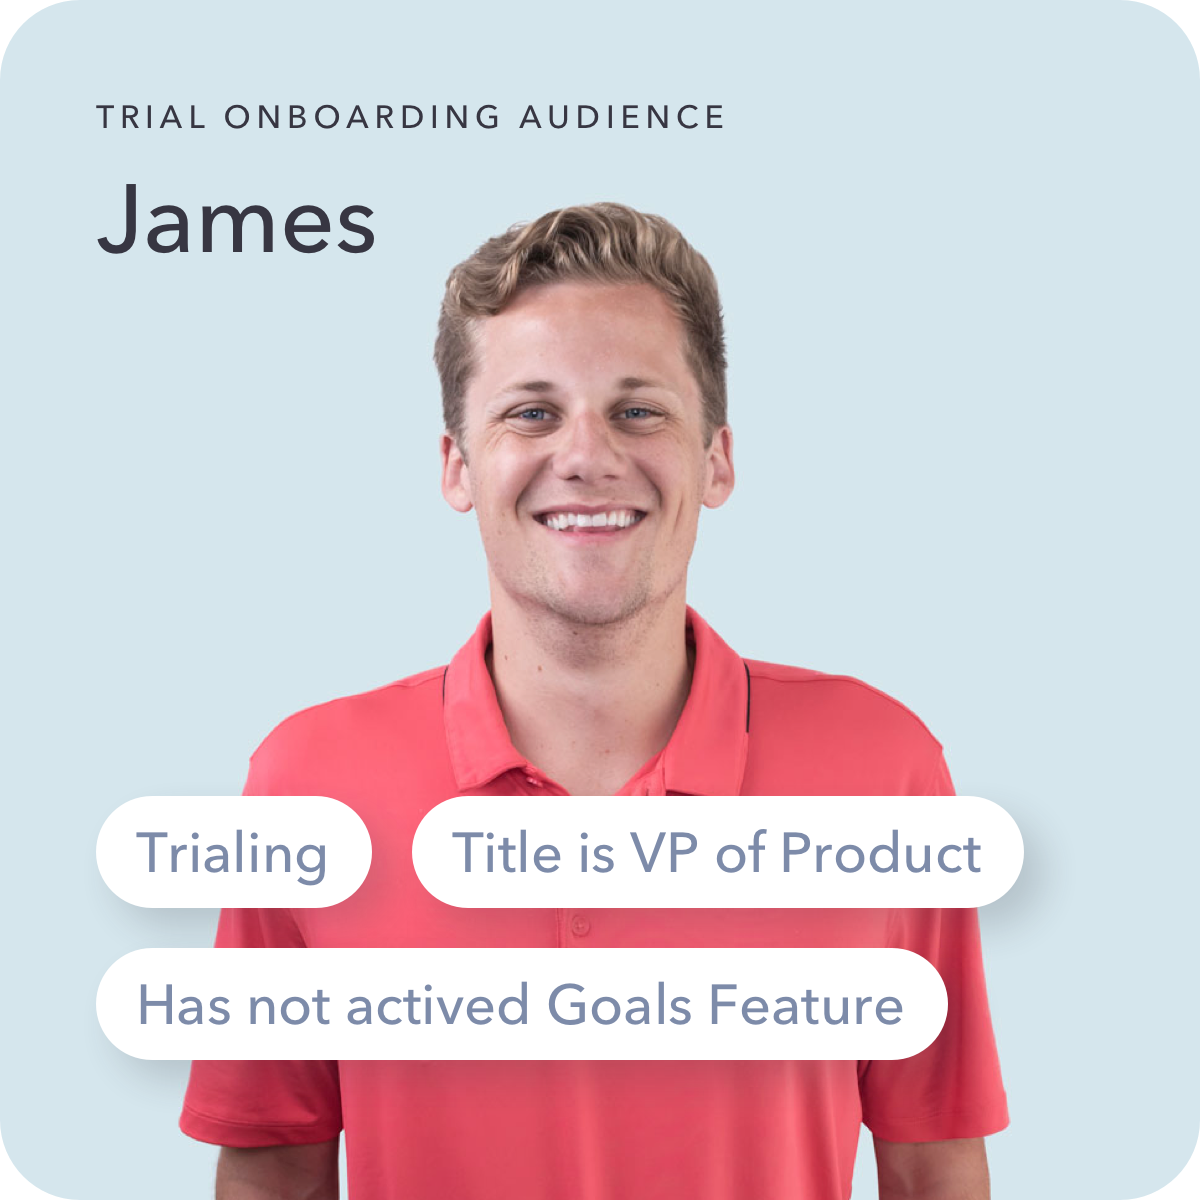 James the Product Manager